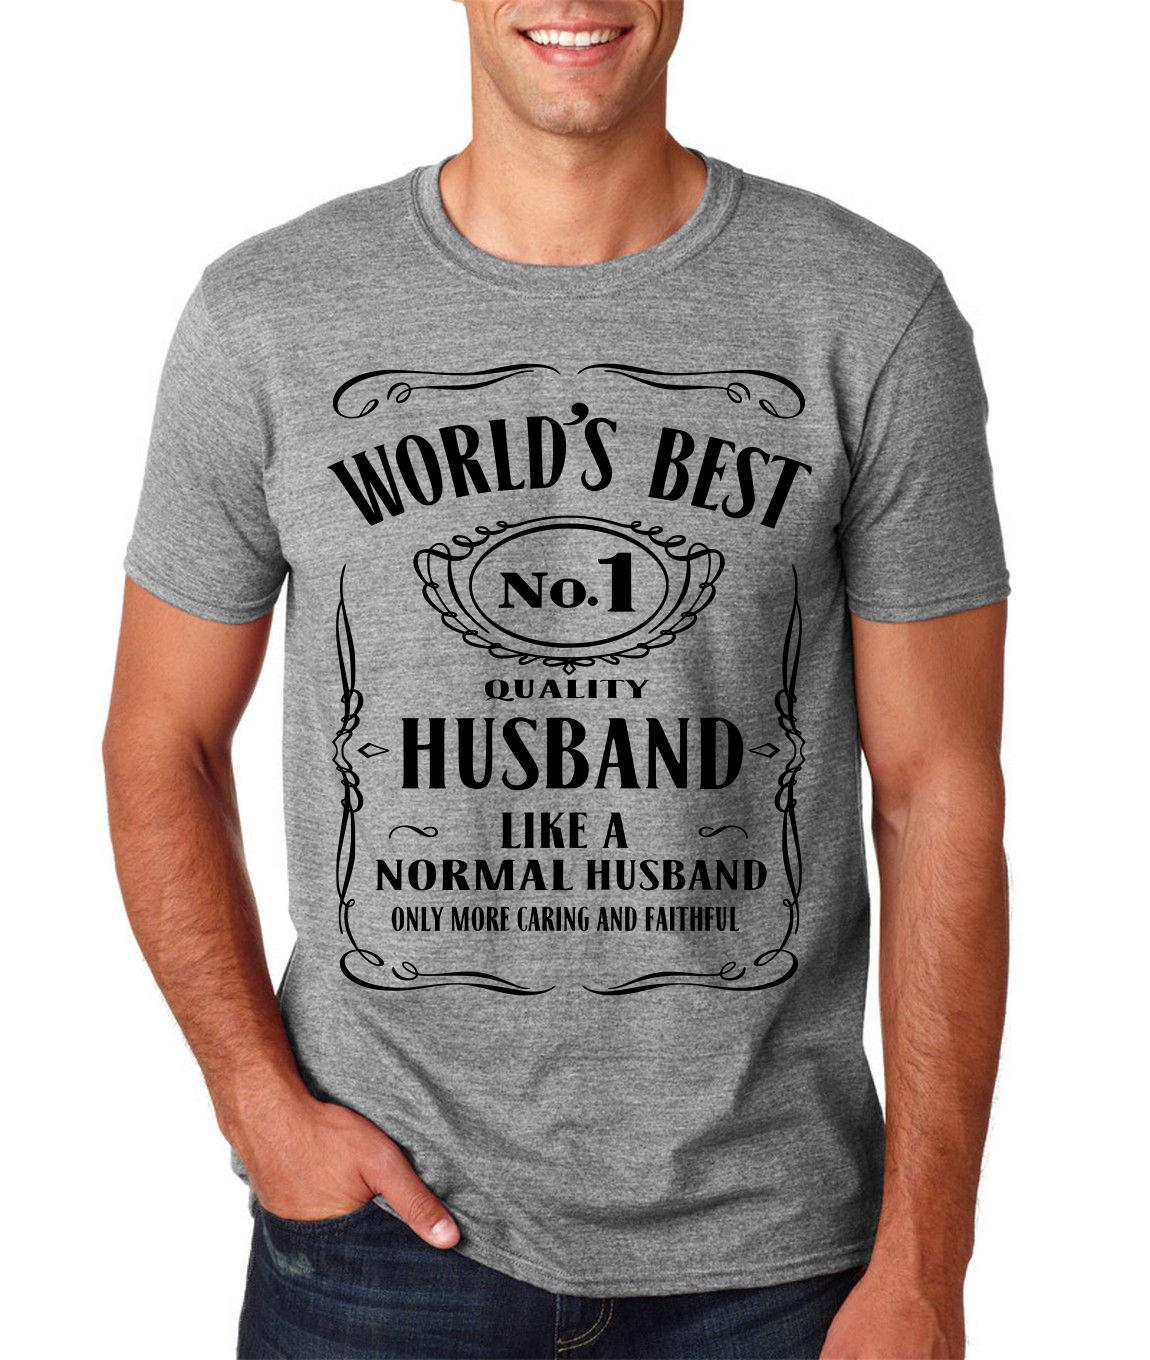 World Best Husband No 1 Mens T Shirt Birthday Gift Valentine Funny Lovers DT Top Tee Hipster O Neck Casual Family Sports Shirts Men